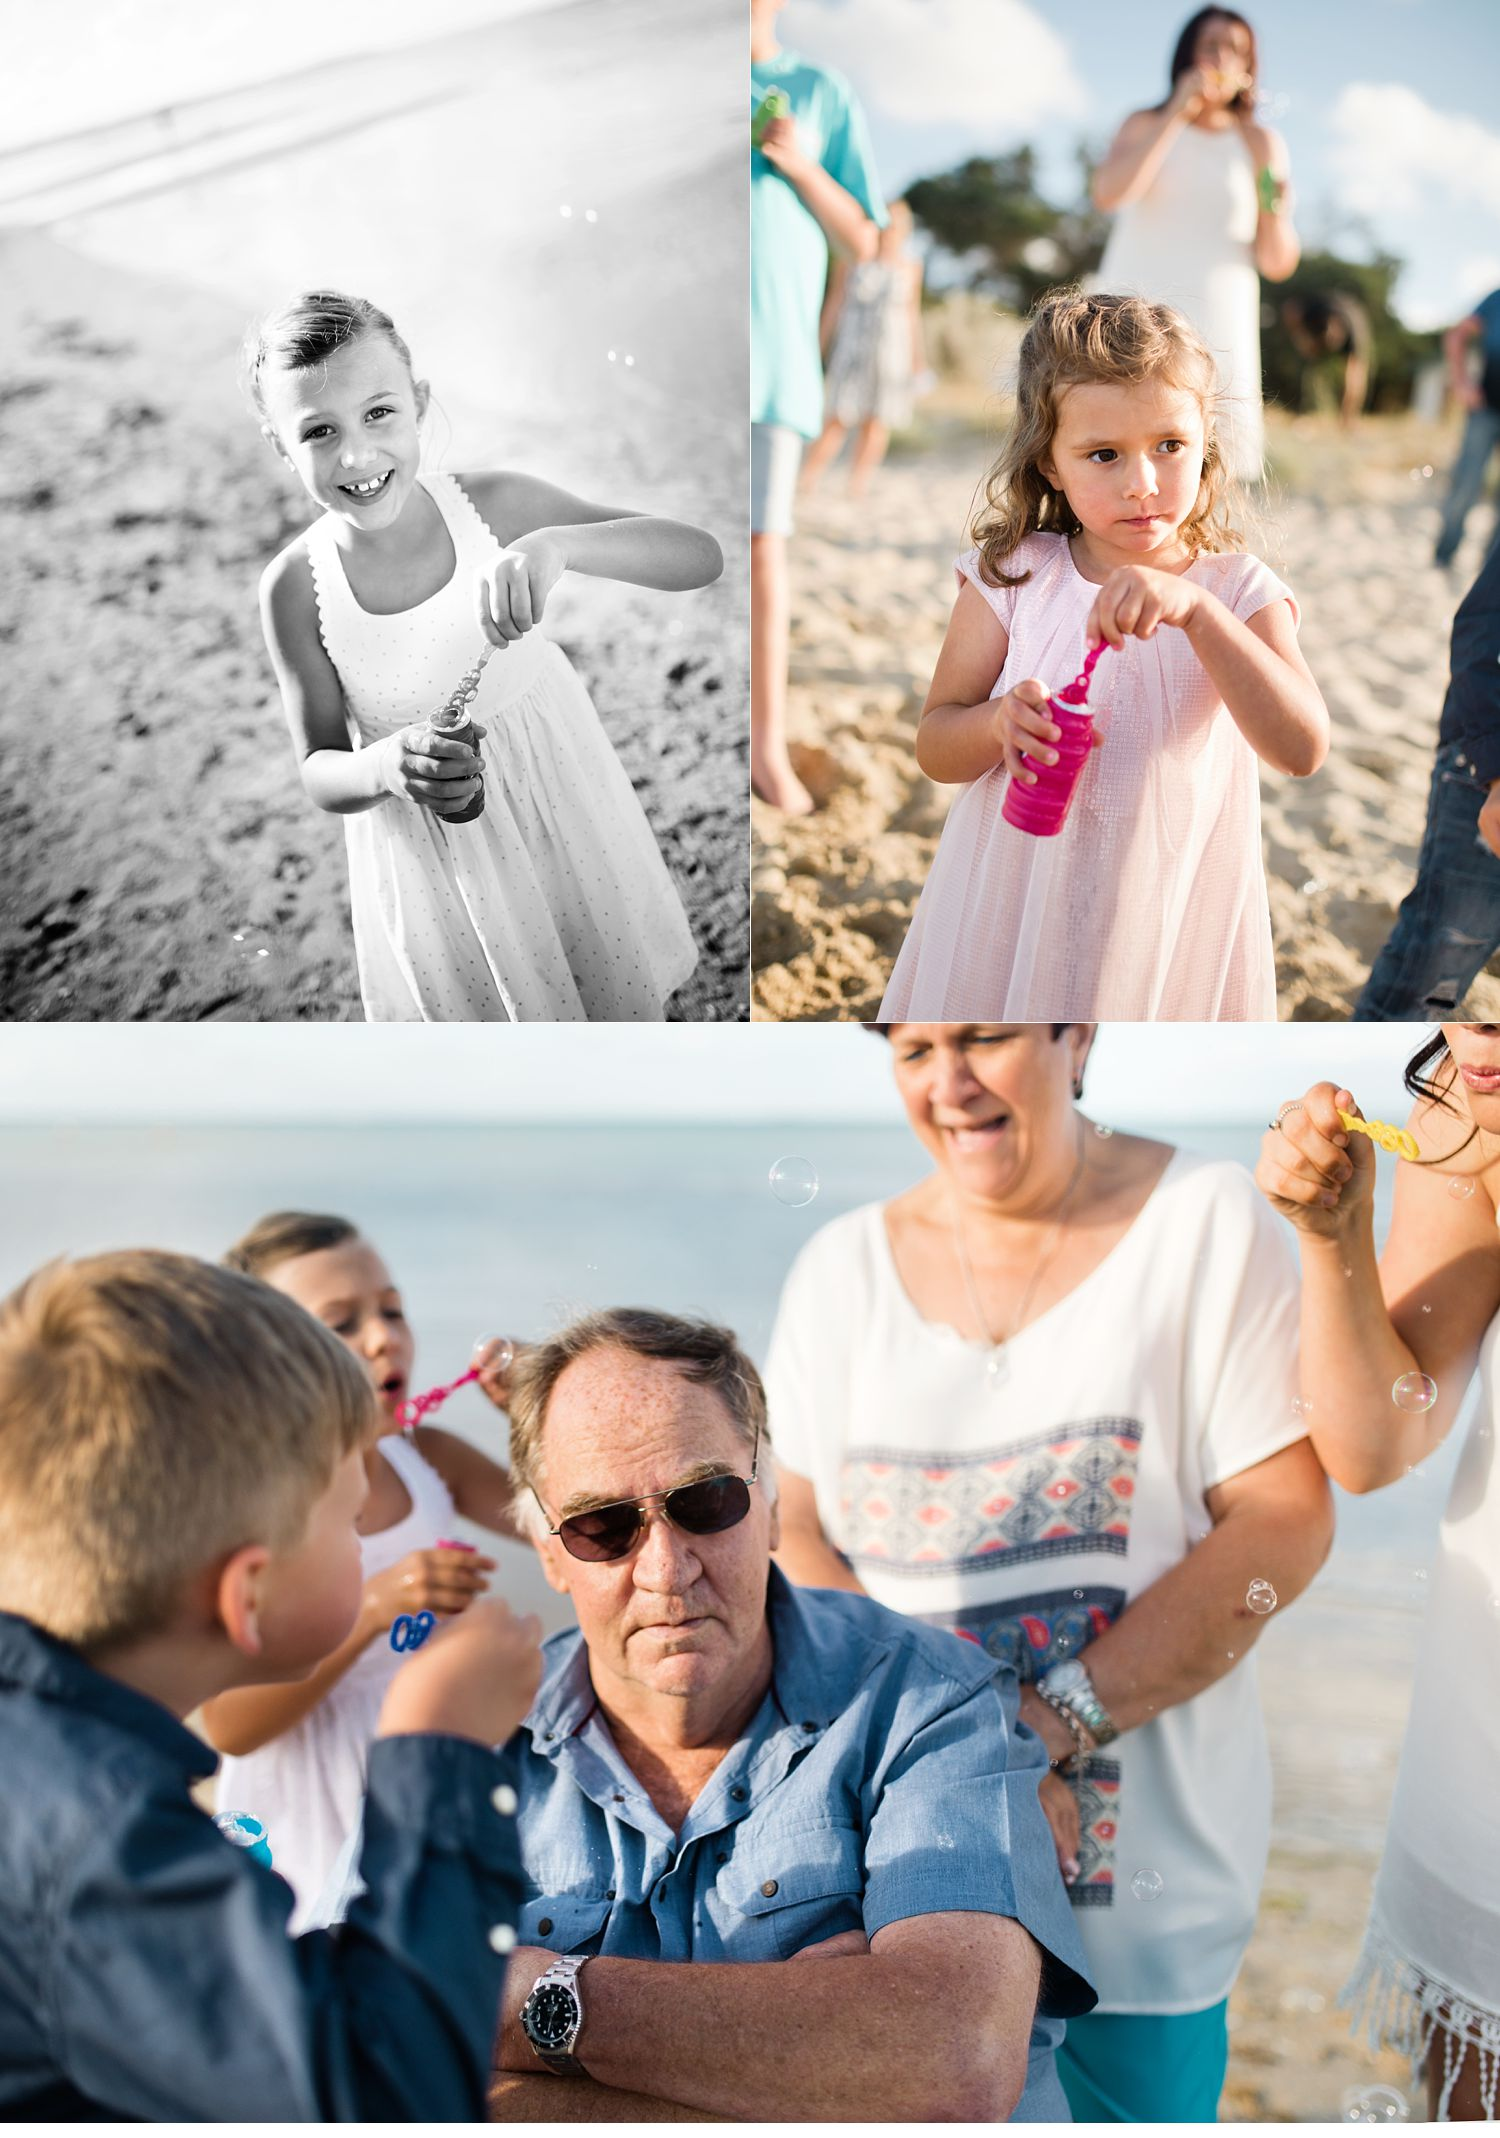 bec-stewart-photography-extended-family-photography-session-melbourne-australia-city-of-casey-53.jpg